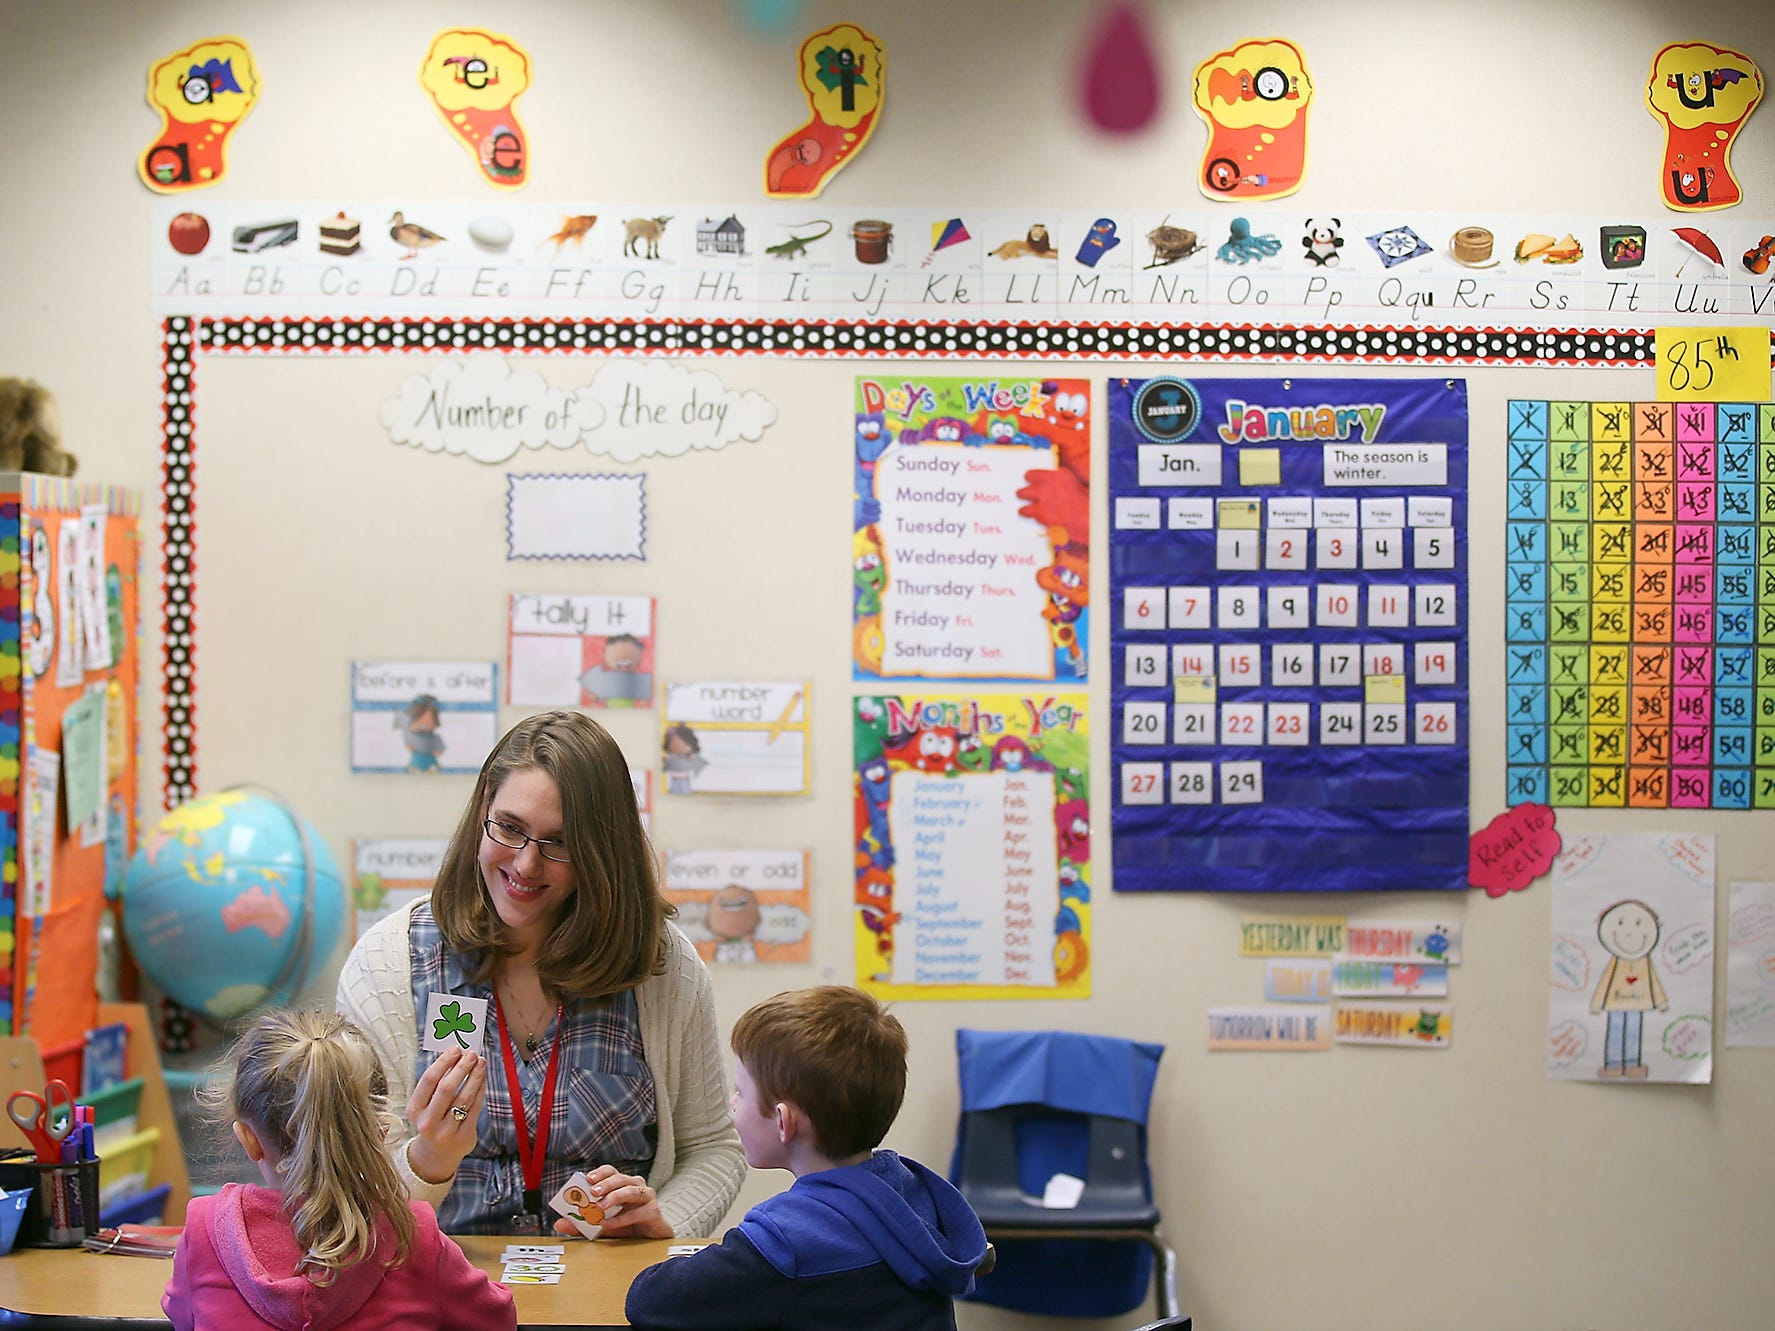 Poulsbo Elementary School teacher Anna Johnston works with students during class on Tuesday, January 29, 2019.